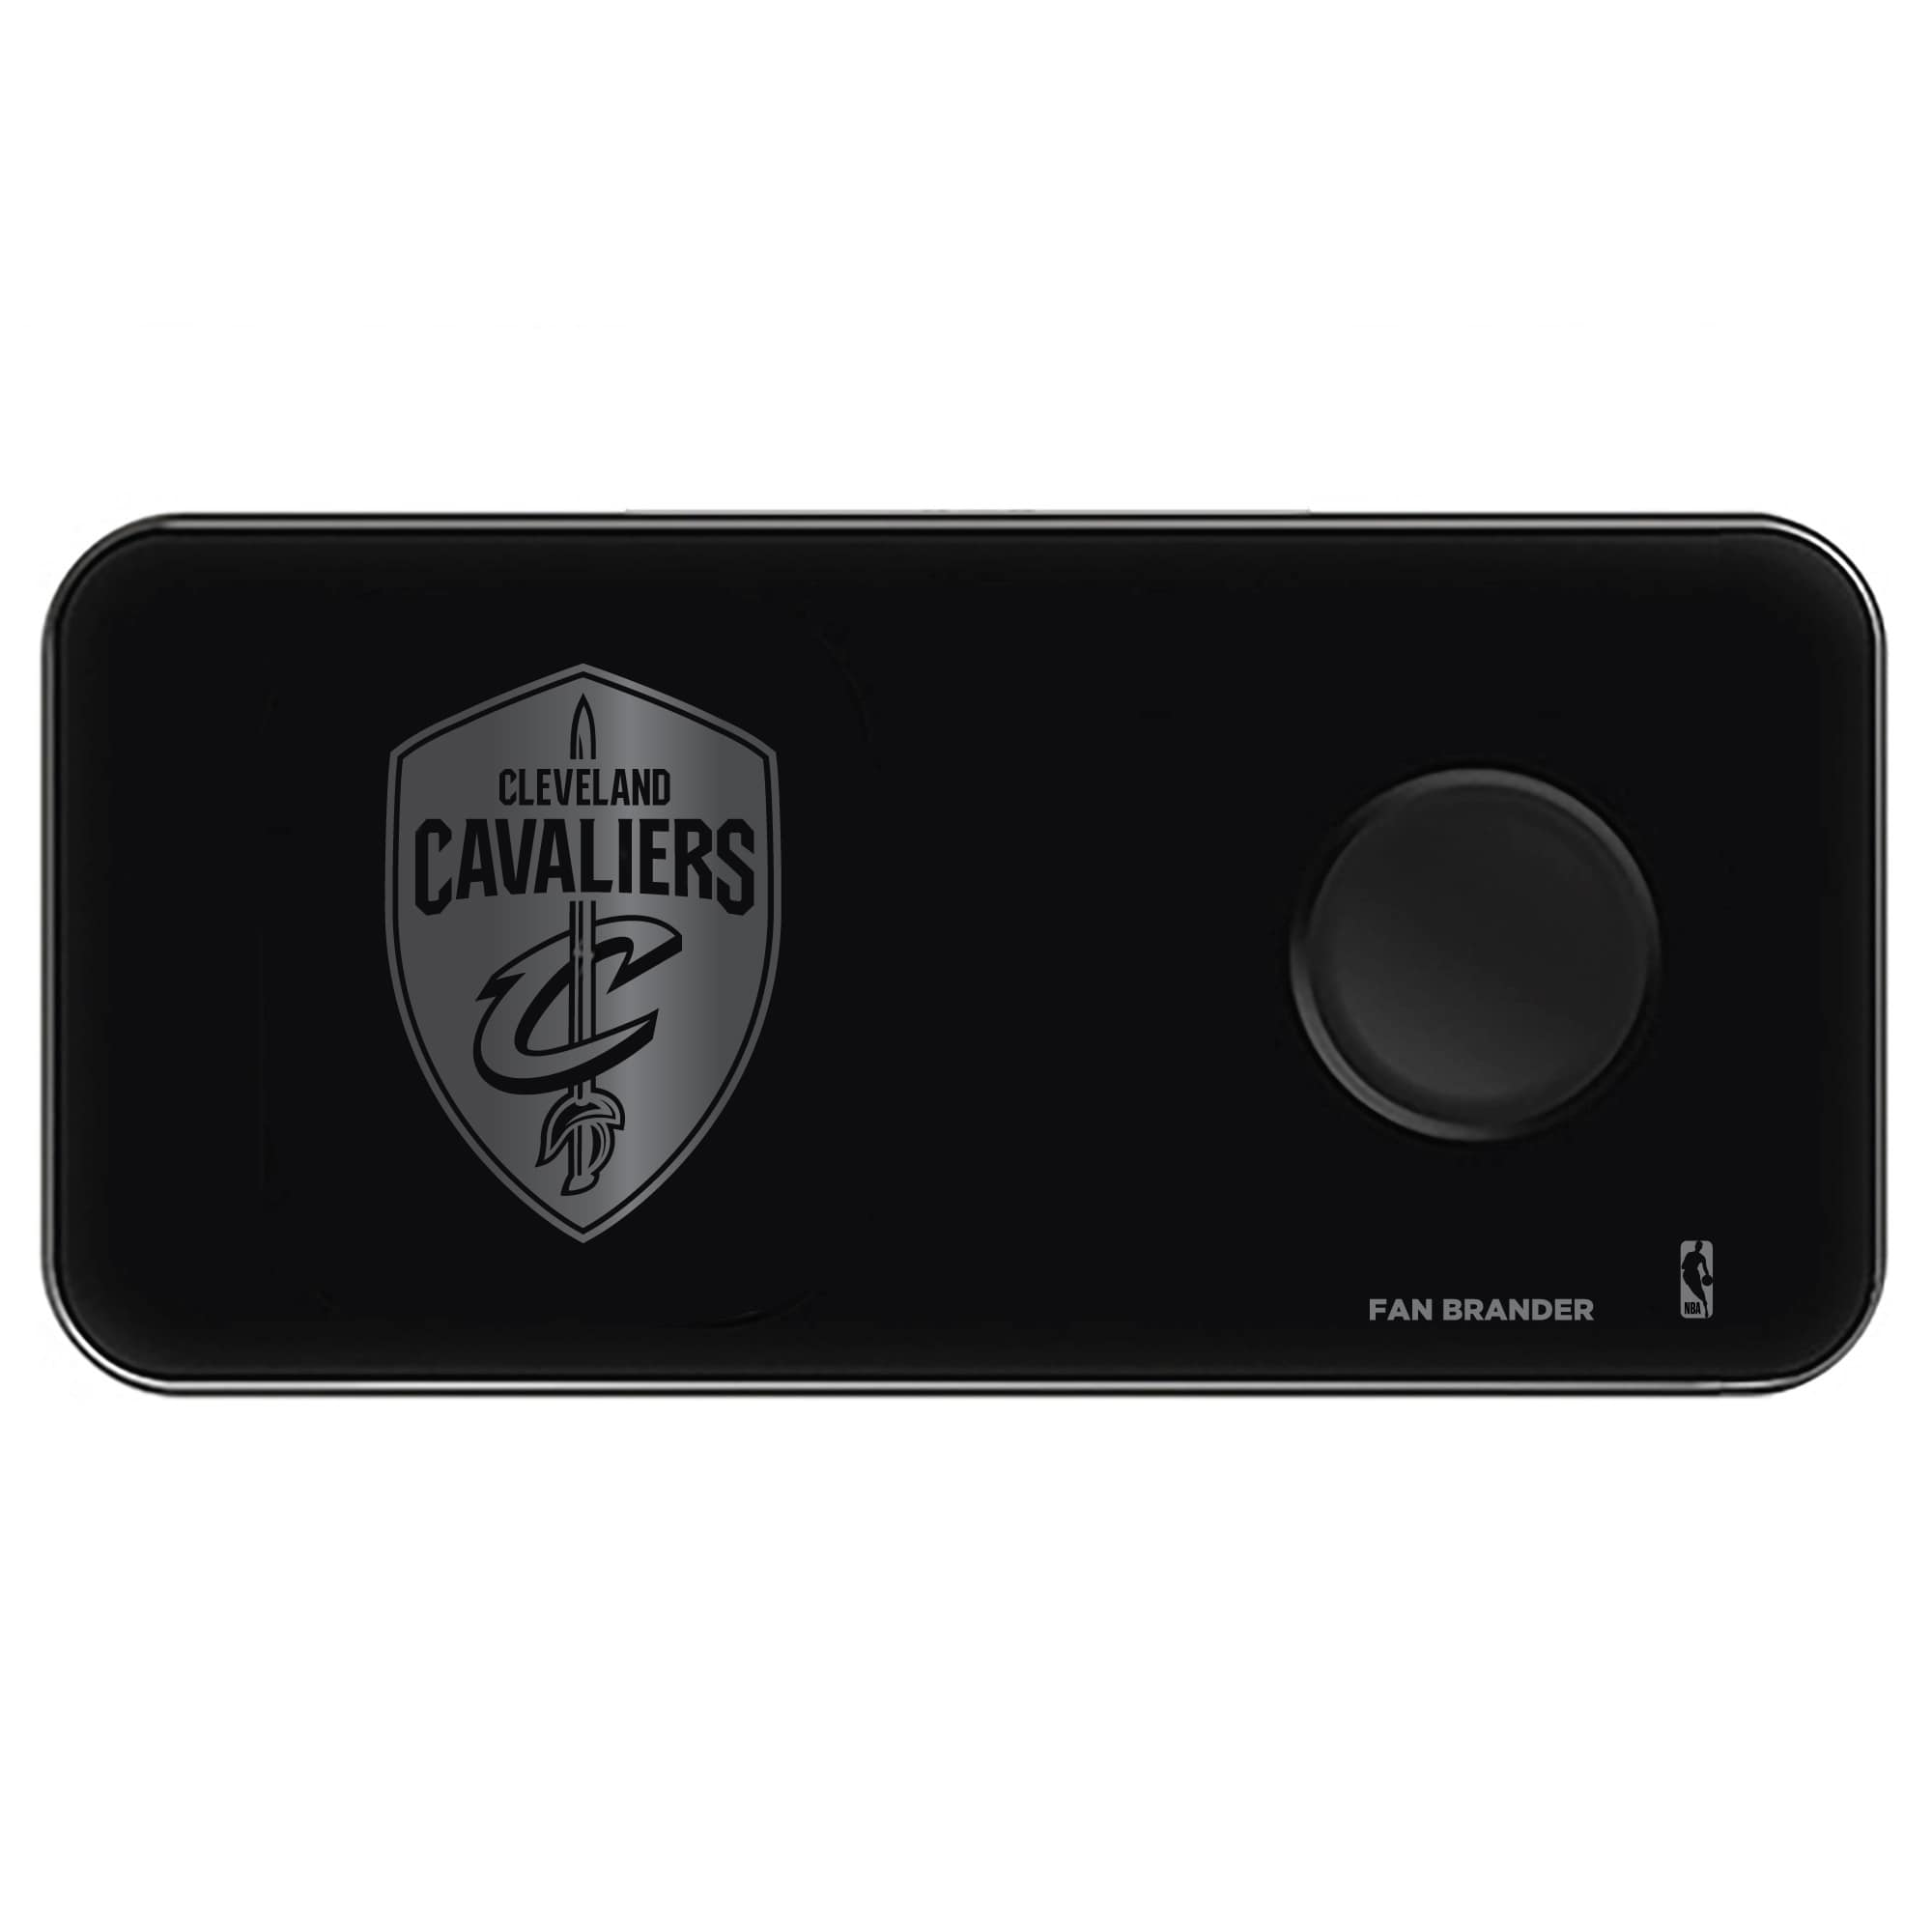 Cleveland Cavaliers 3-in-1 Glass Wireless Charge Pad - Black